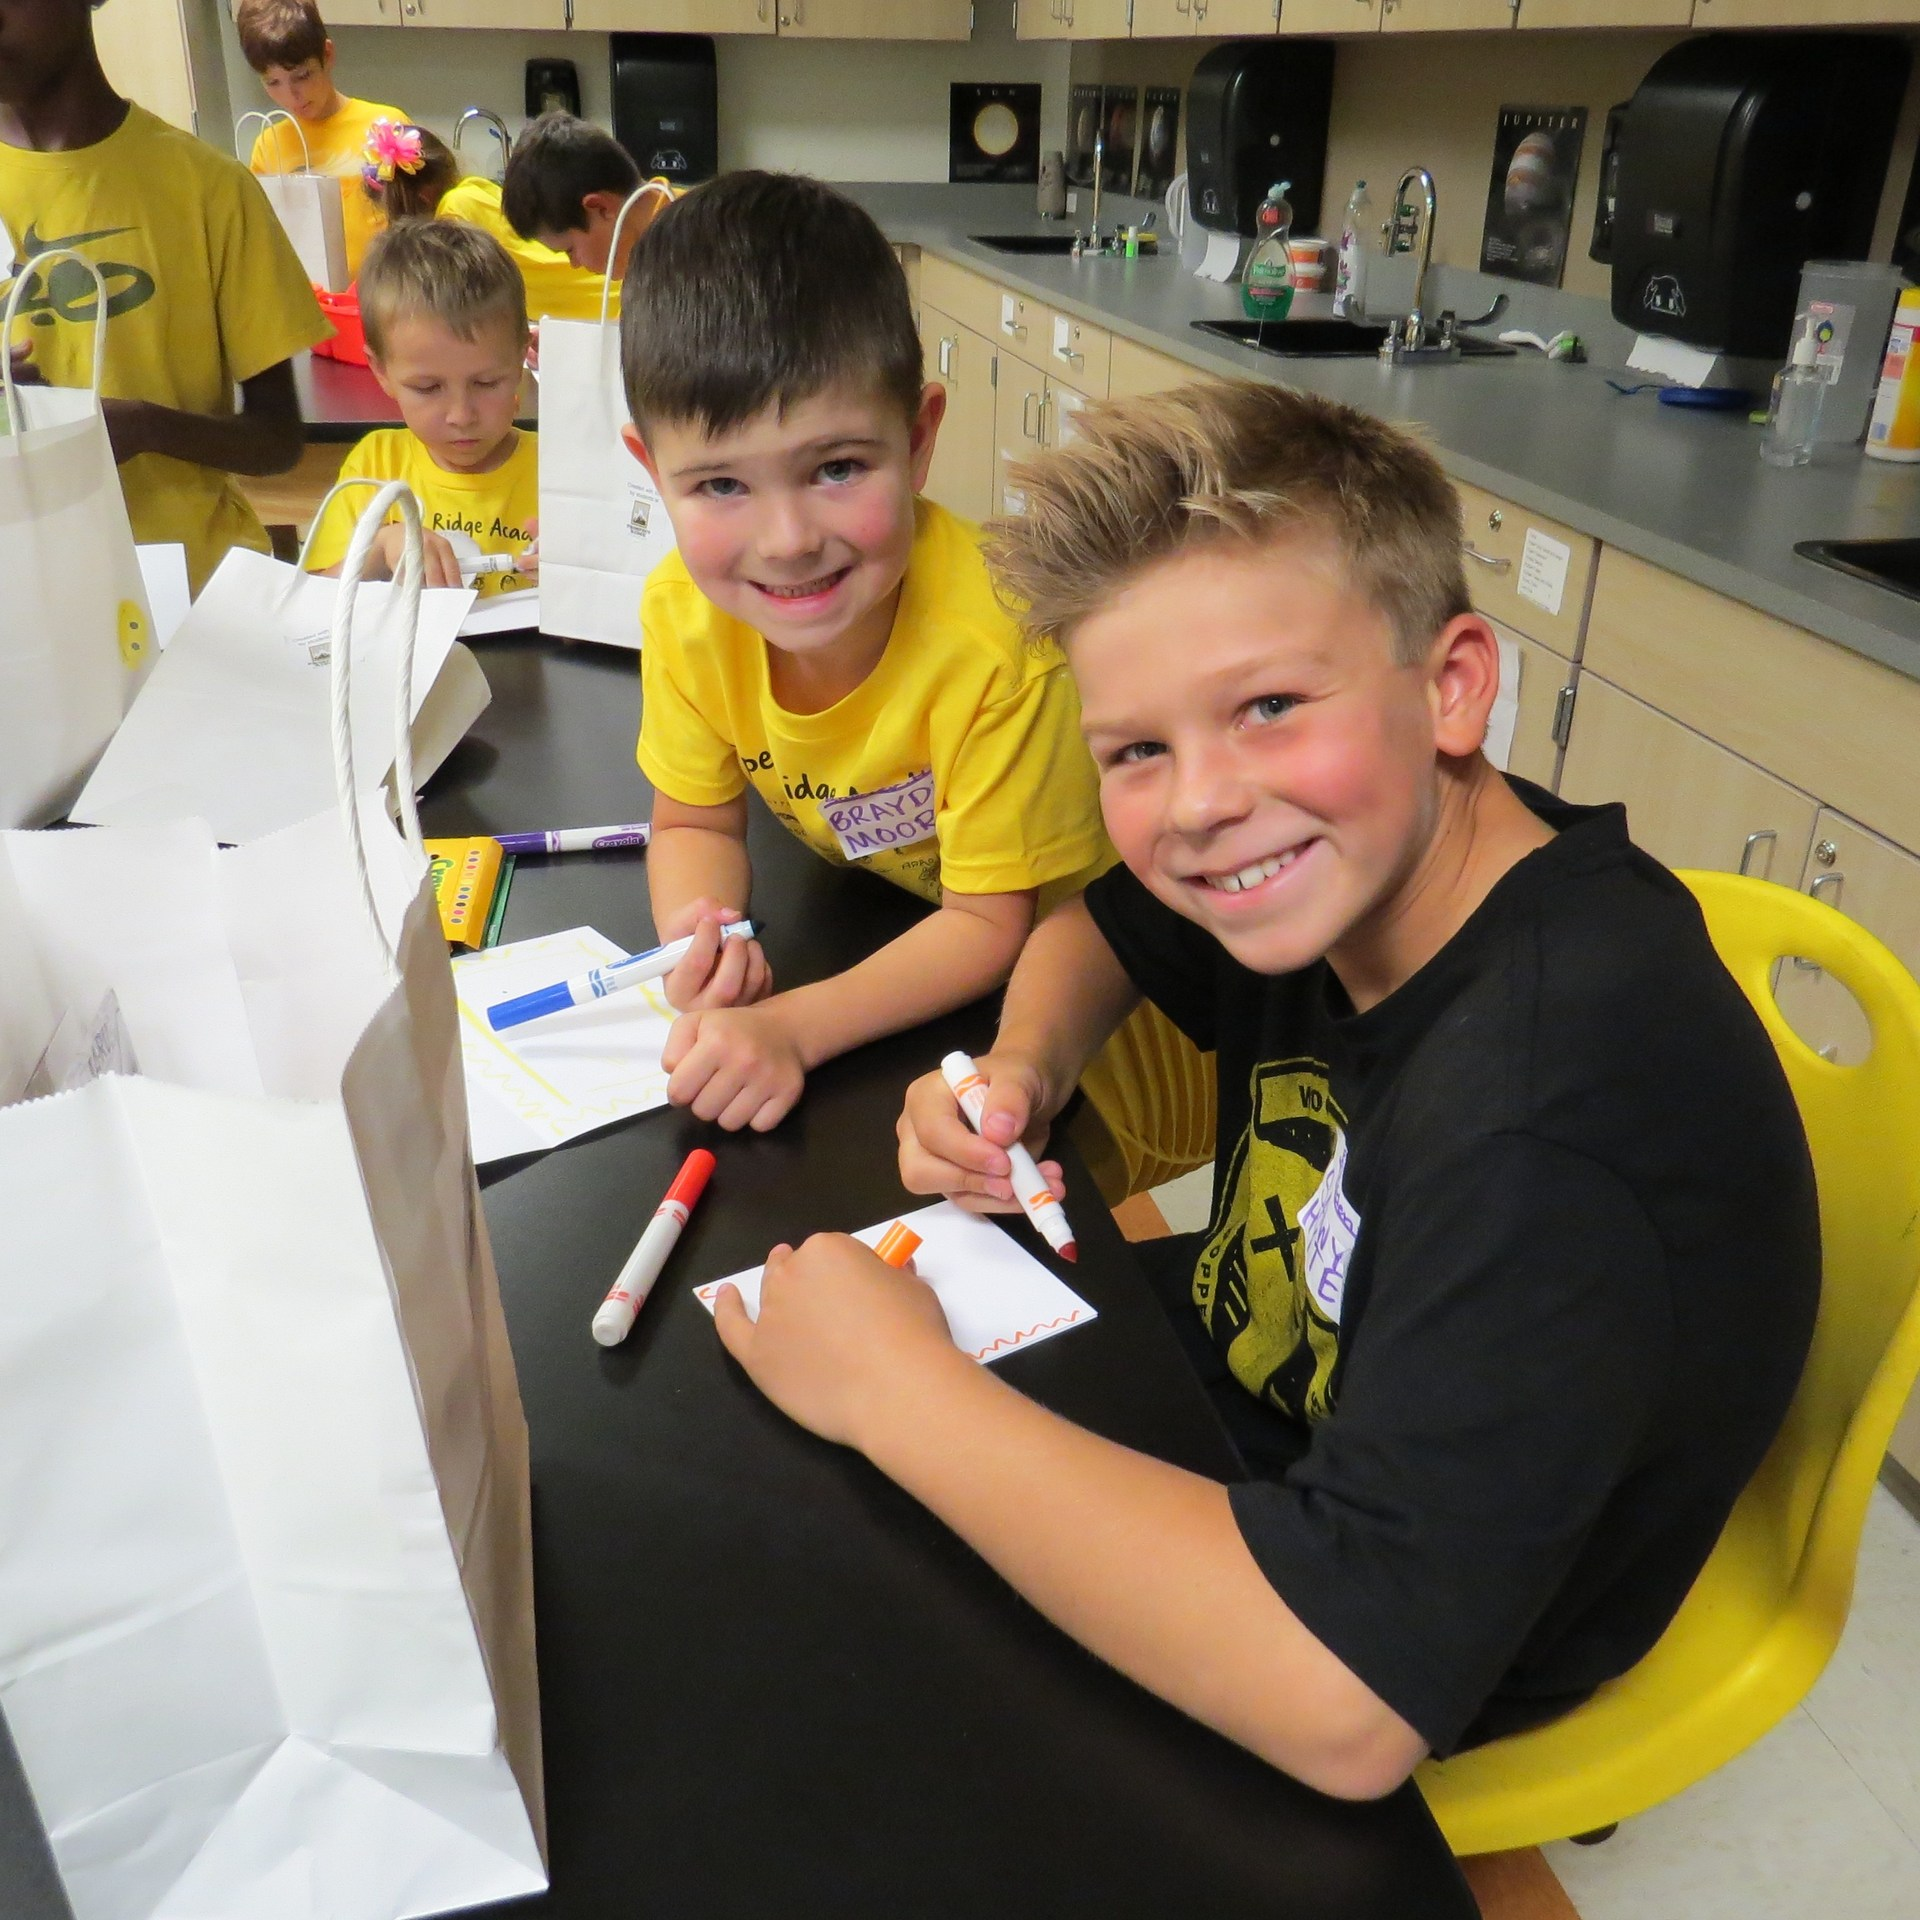 Two students take a break from writing on cards to smile at the camera